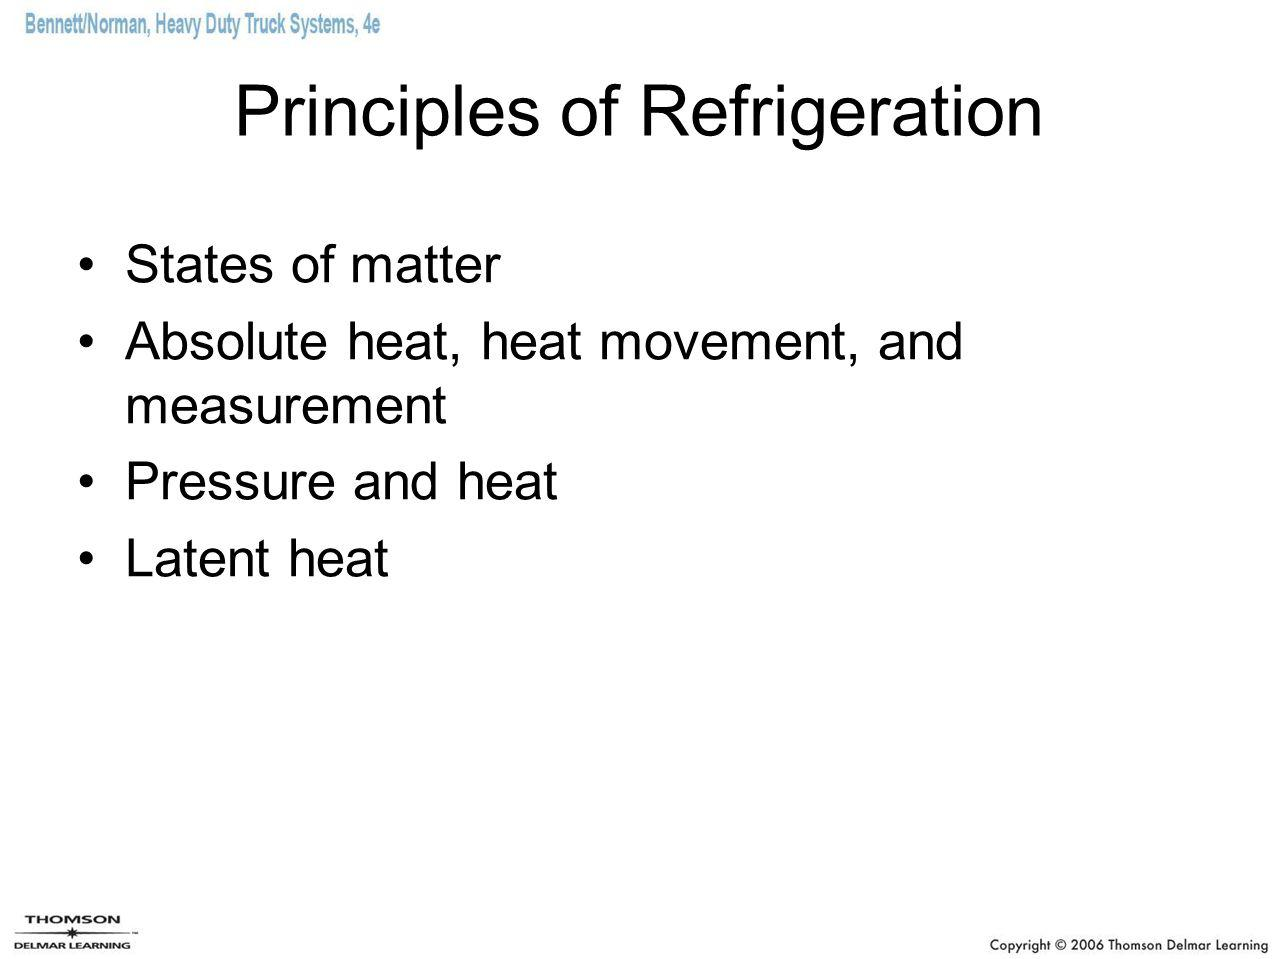 Principles of Refrigeration States of matter Absolute heat, heat movement, and measurement Pressure and heat Latent heat